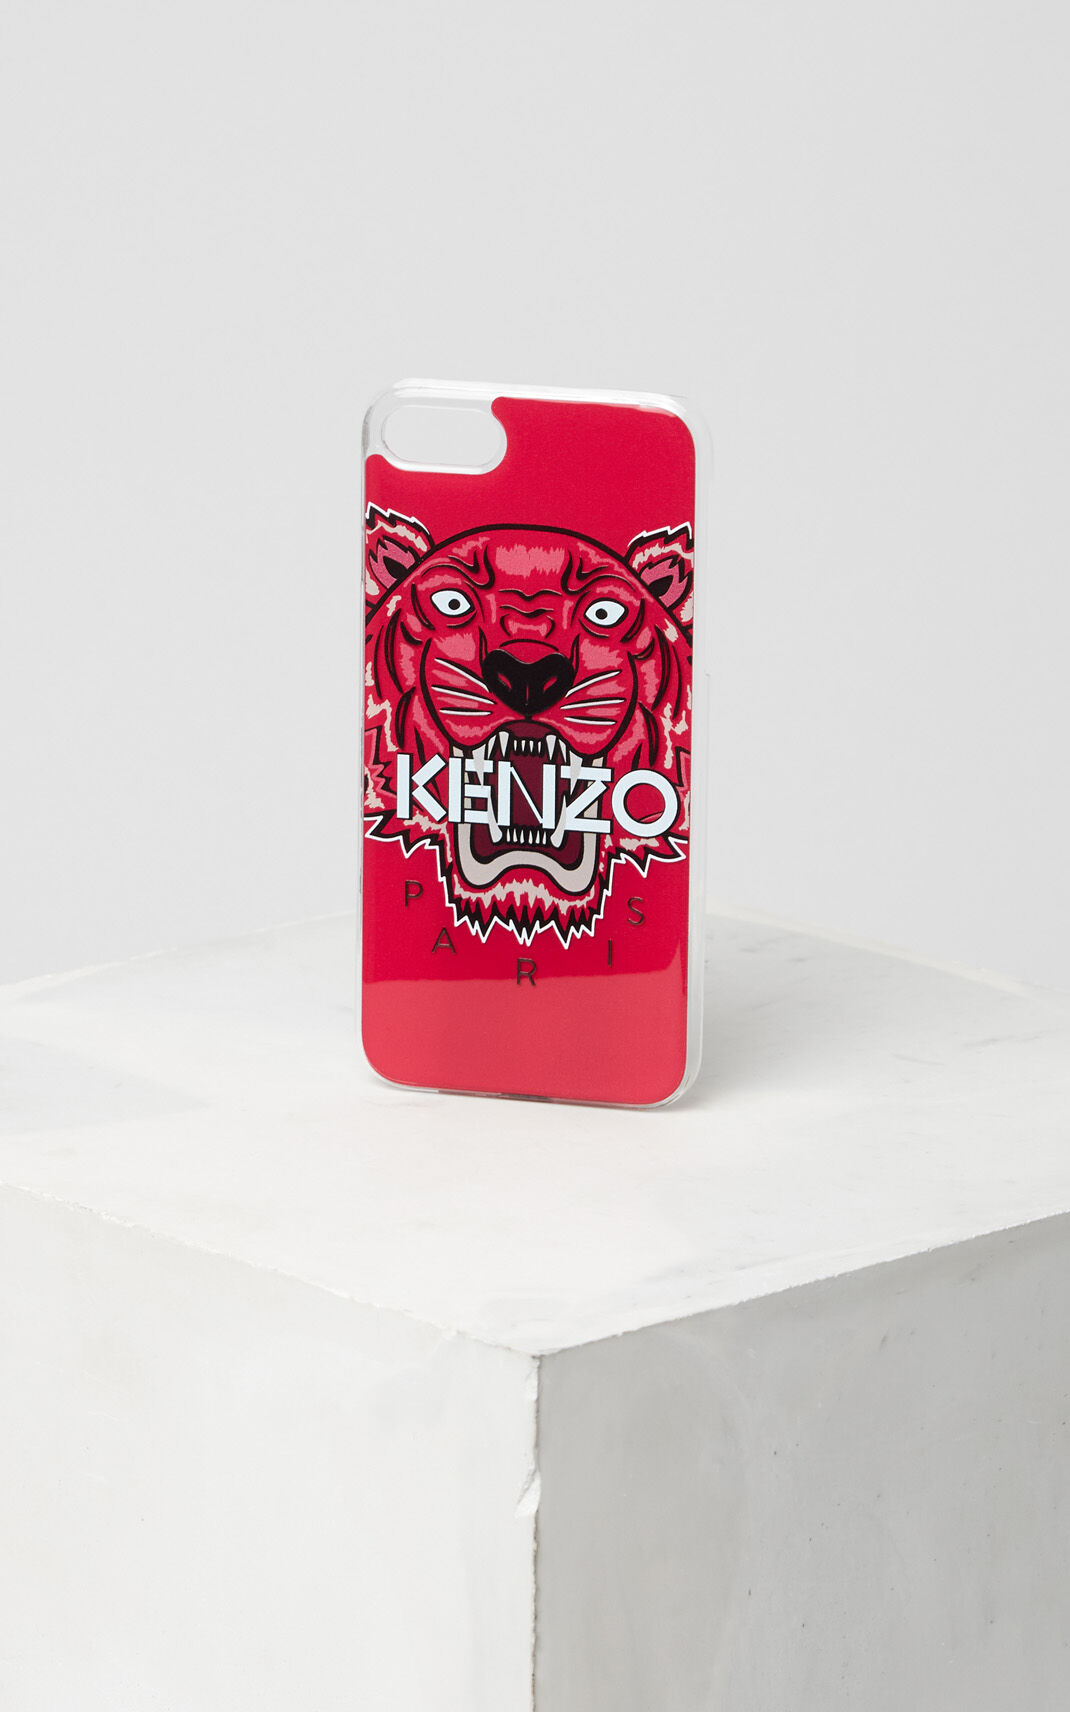 DEEP FUSCHIA 3D Tiger iPhone 7/8 case for unisex KENZO